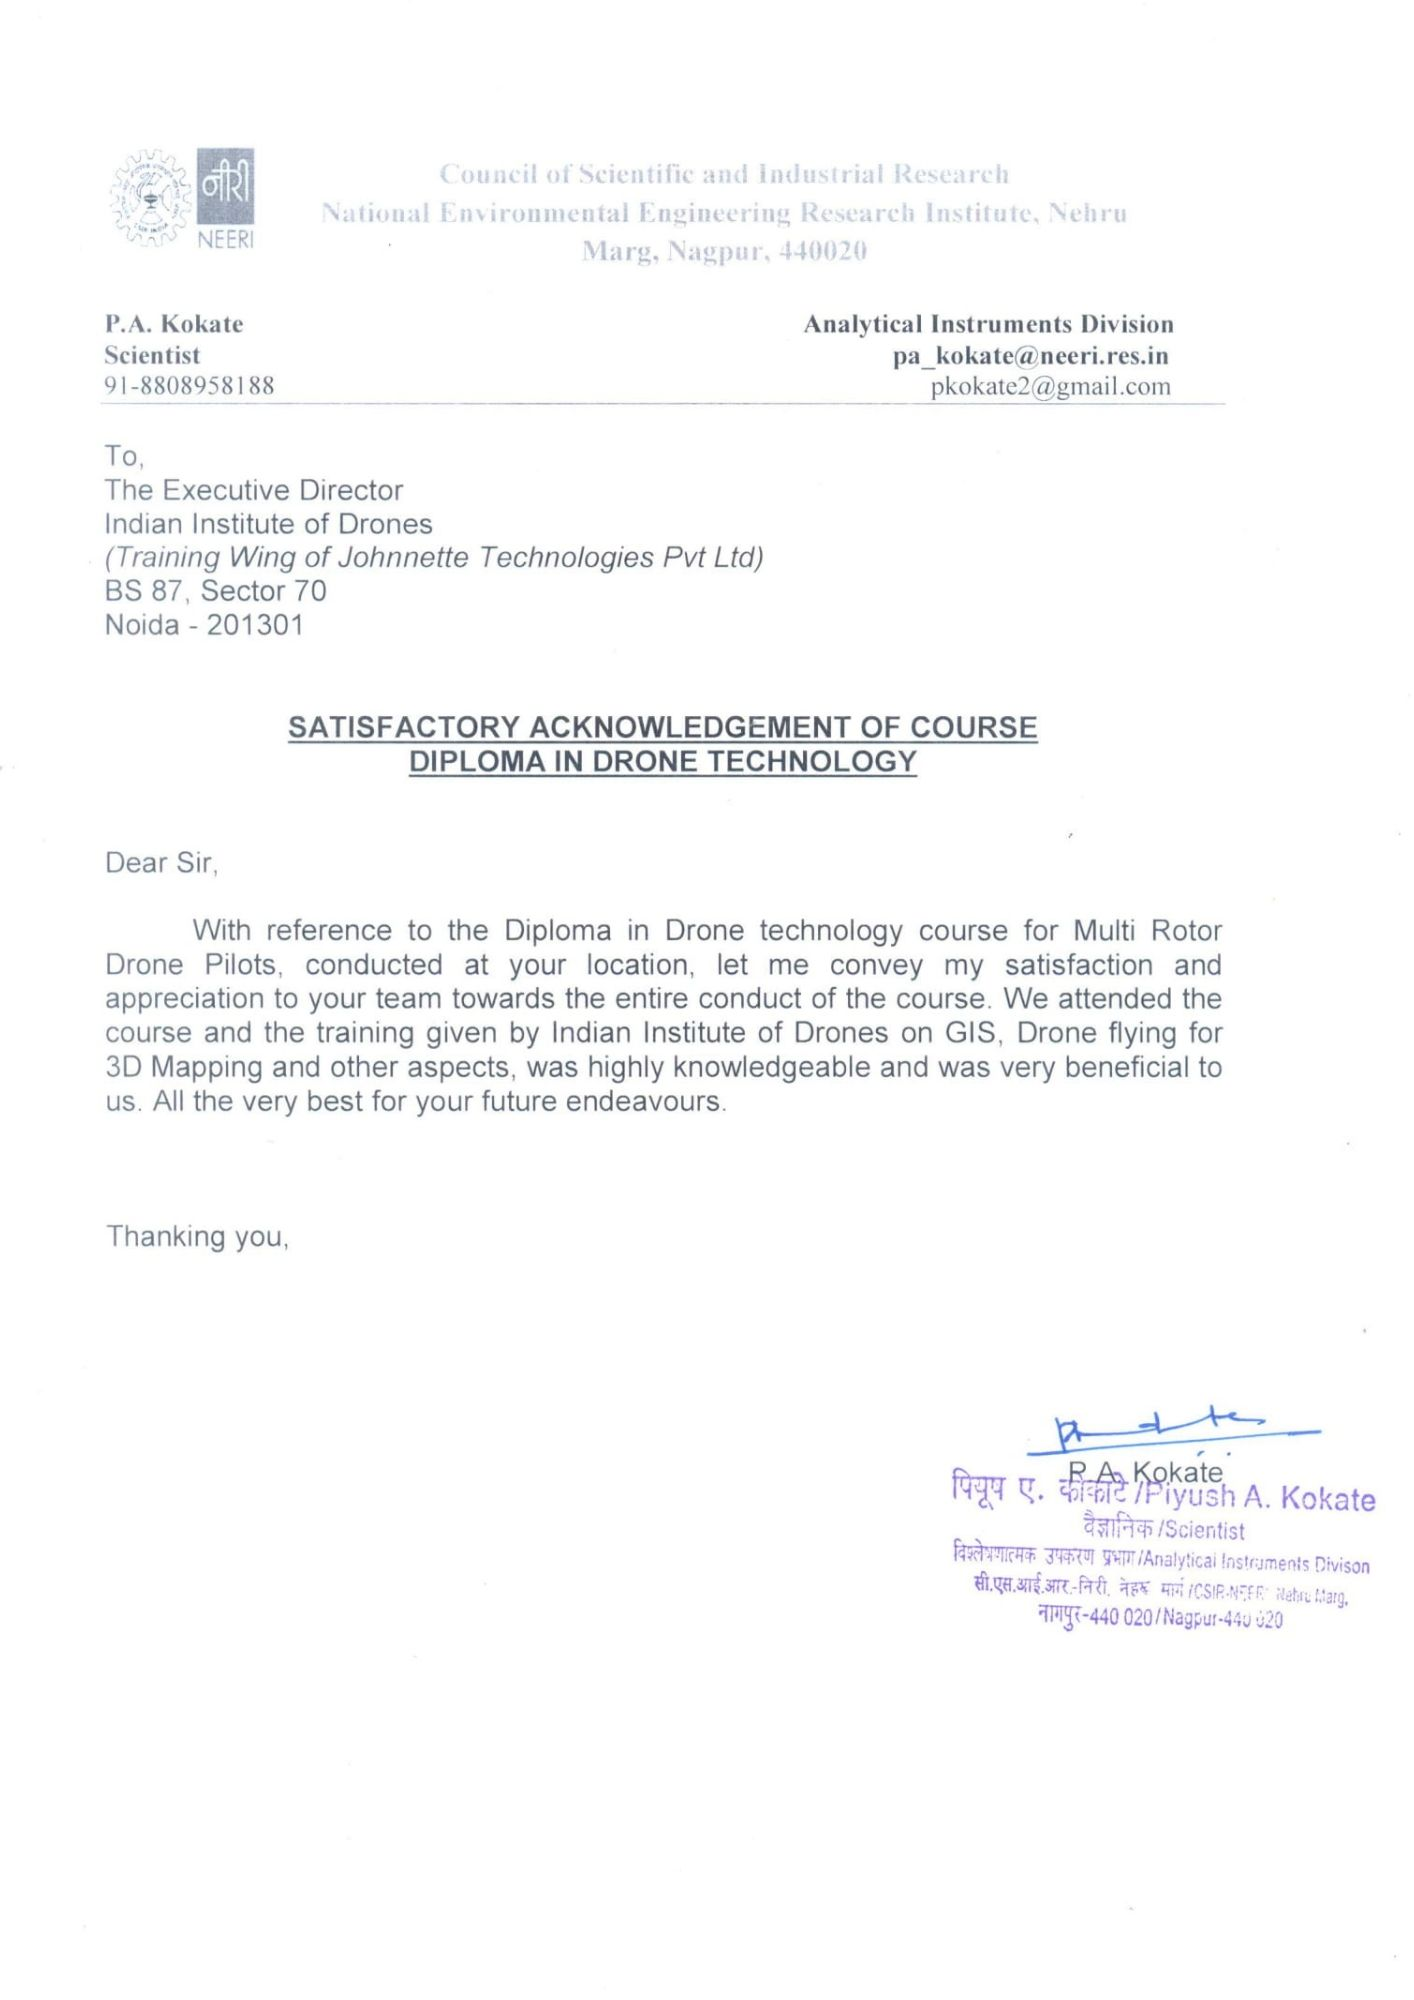 Satisfactory Letter for Drone Training Received from CSIR